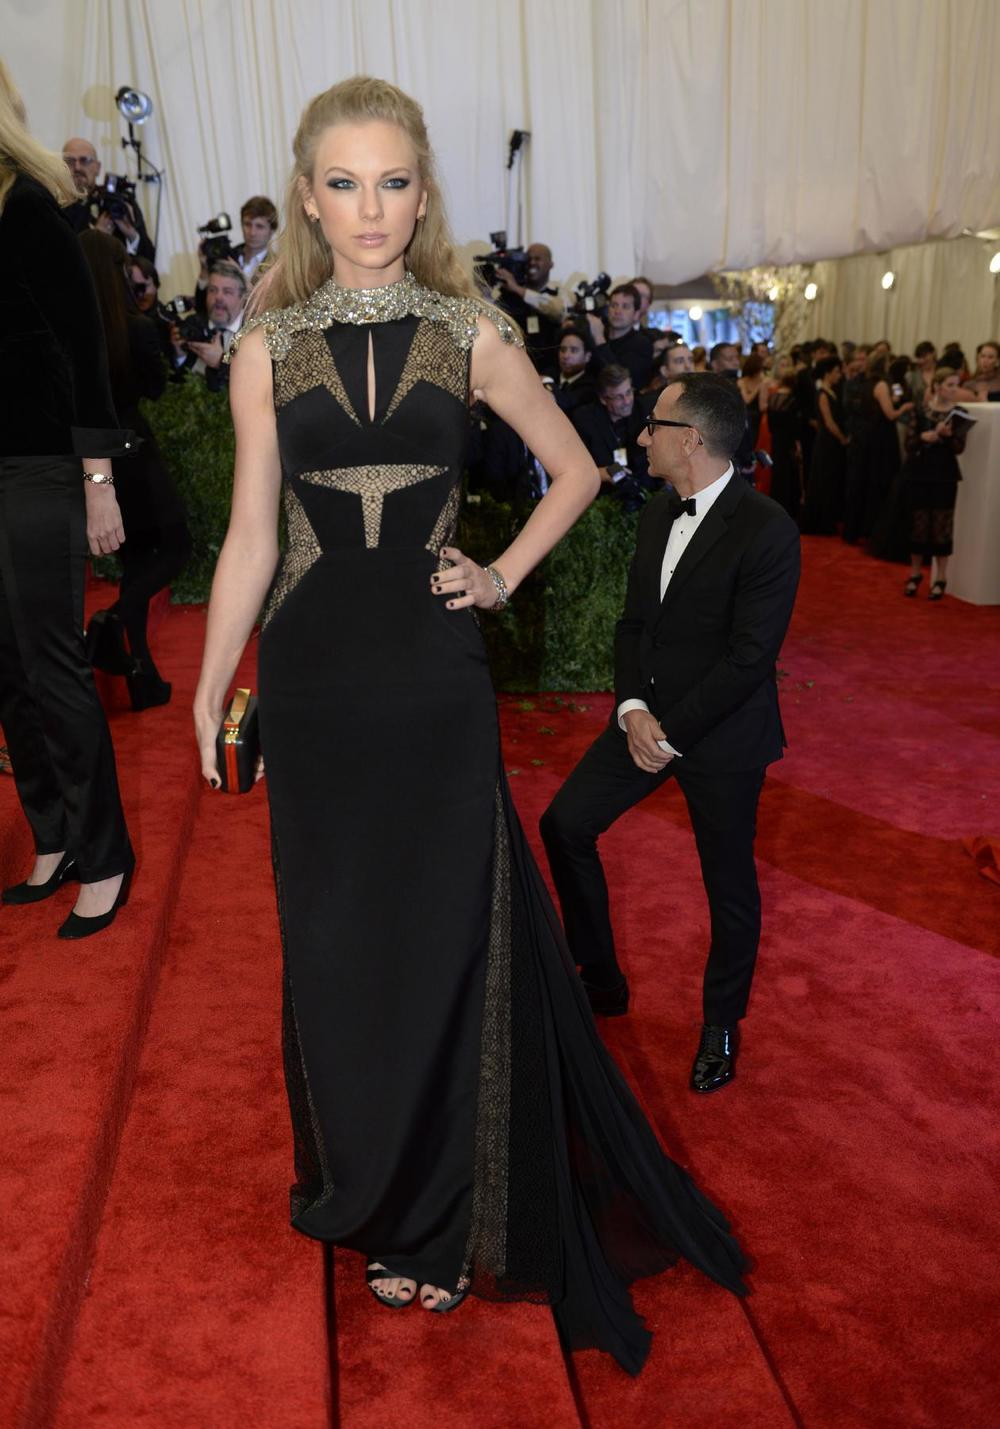 Taylor Swift in J.Mendel